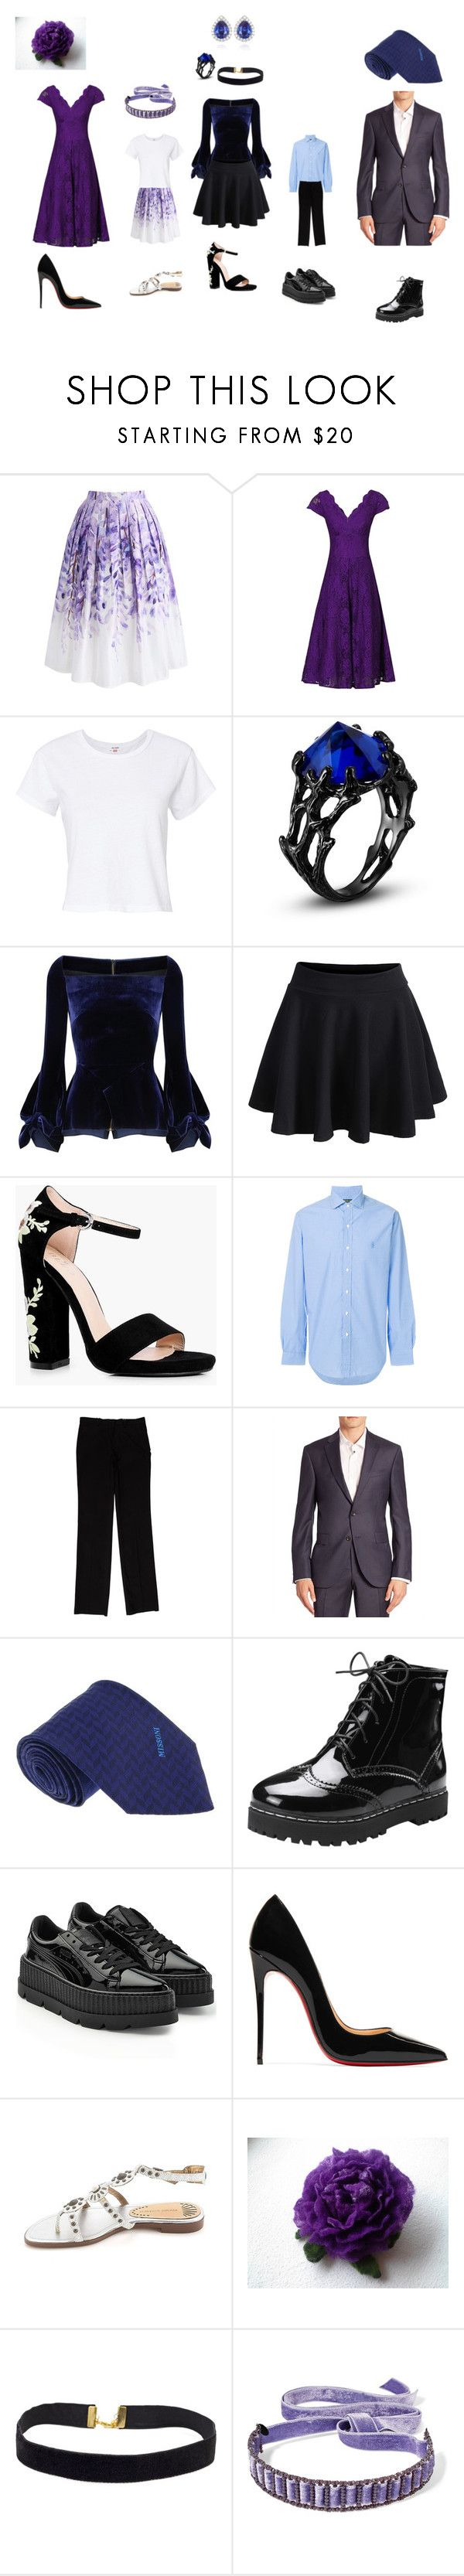 """""""Family Picture 1"""" by ro023107 on Polyvore featuring Chicwish, Jolie Moi, RE/DONE, Roland Mouret, Boohoo, Polo Ralph Lauren, Calvin Klein Collection, Saks Fifth Avenue, Missoni and Puma"""